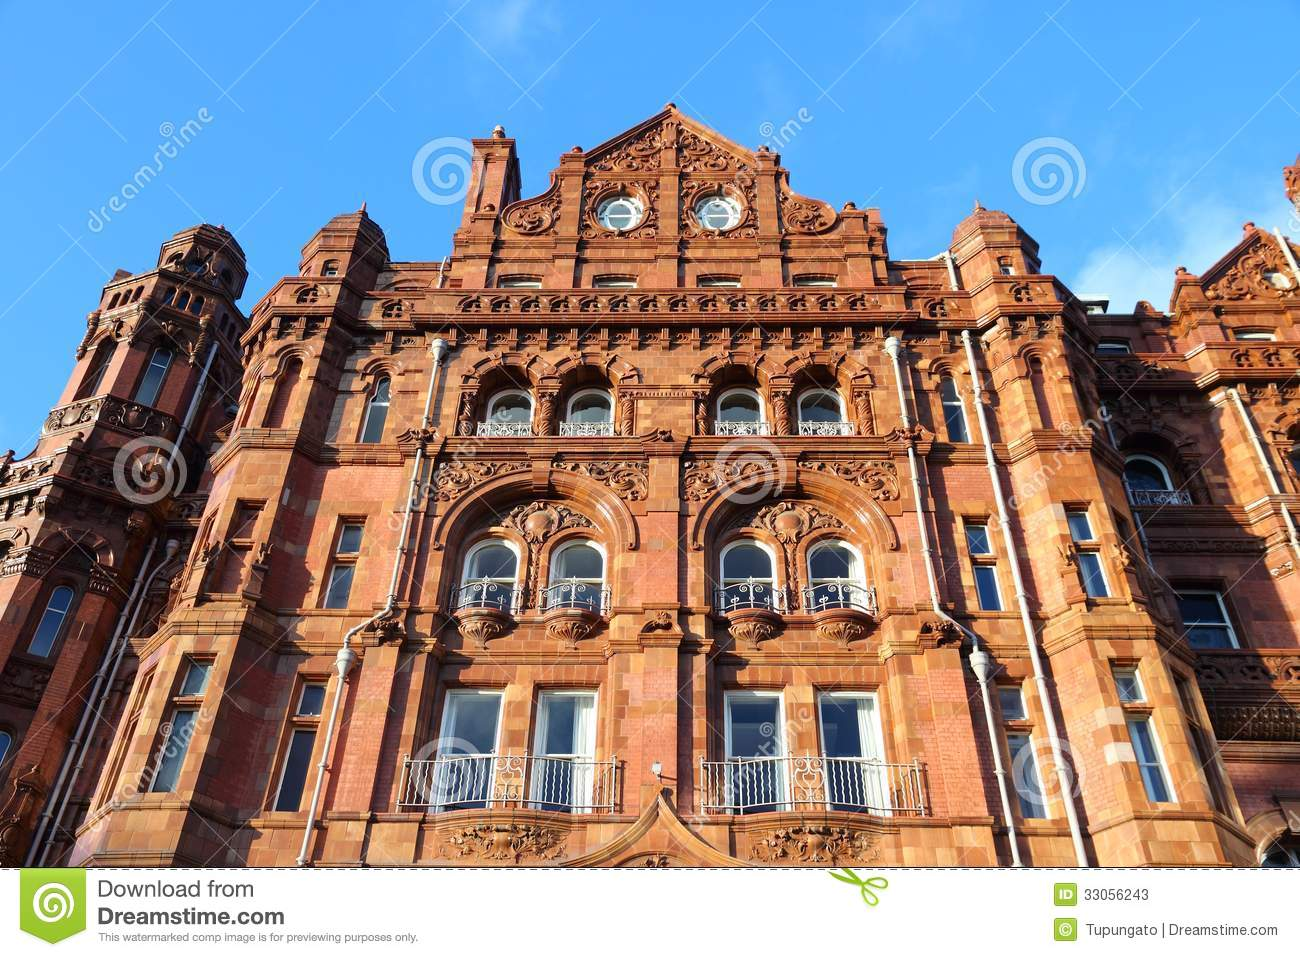 Manchester stock photos image 33056243 for Pictures of baroque architecture